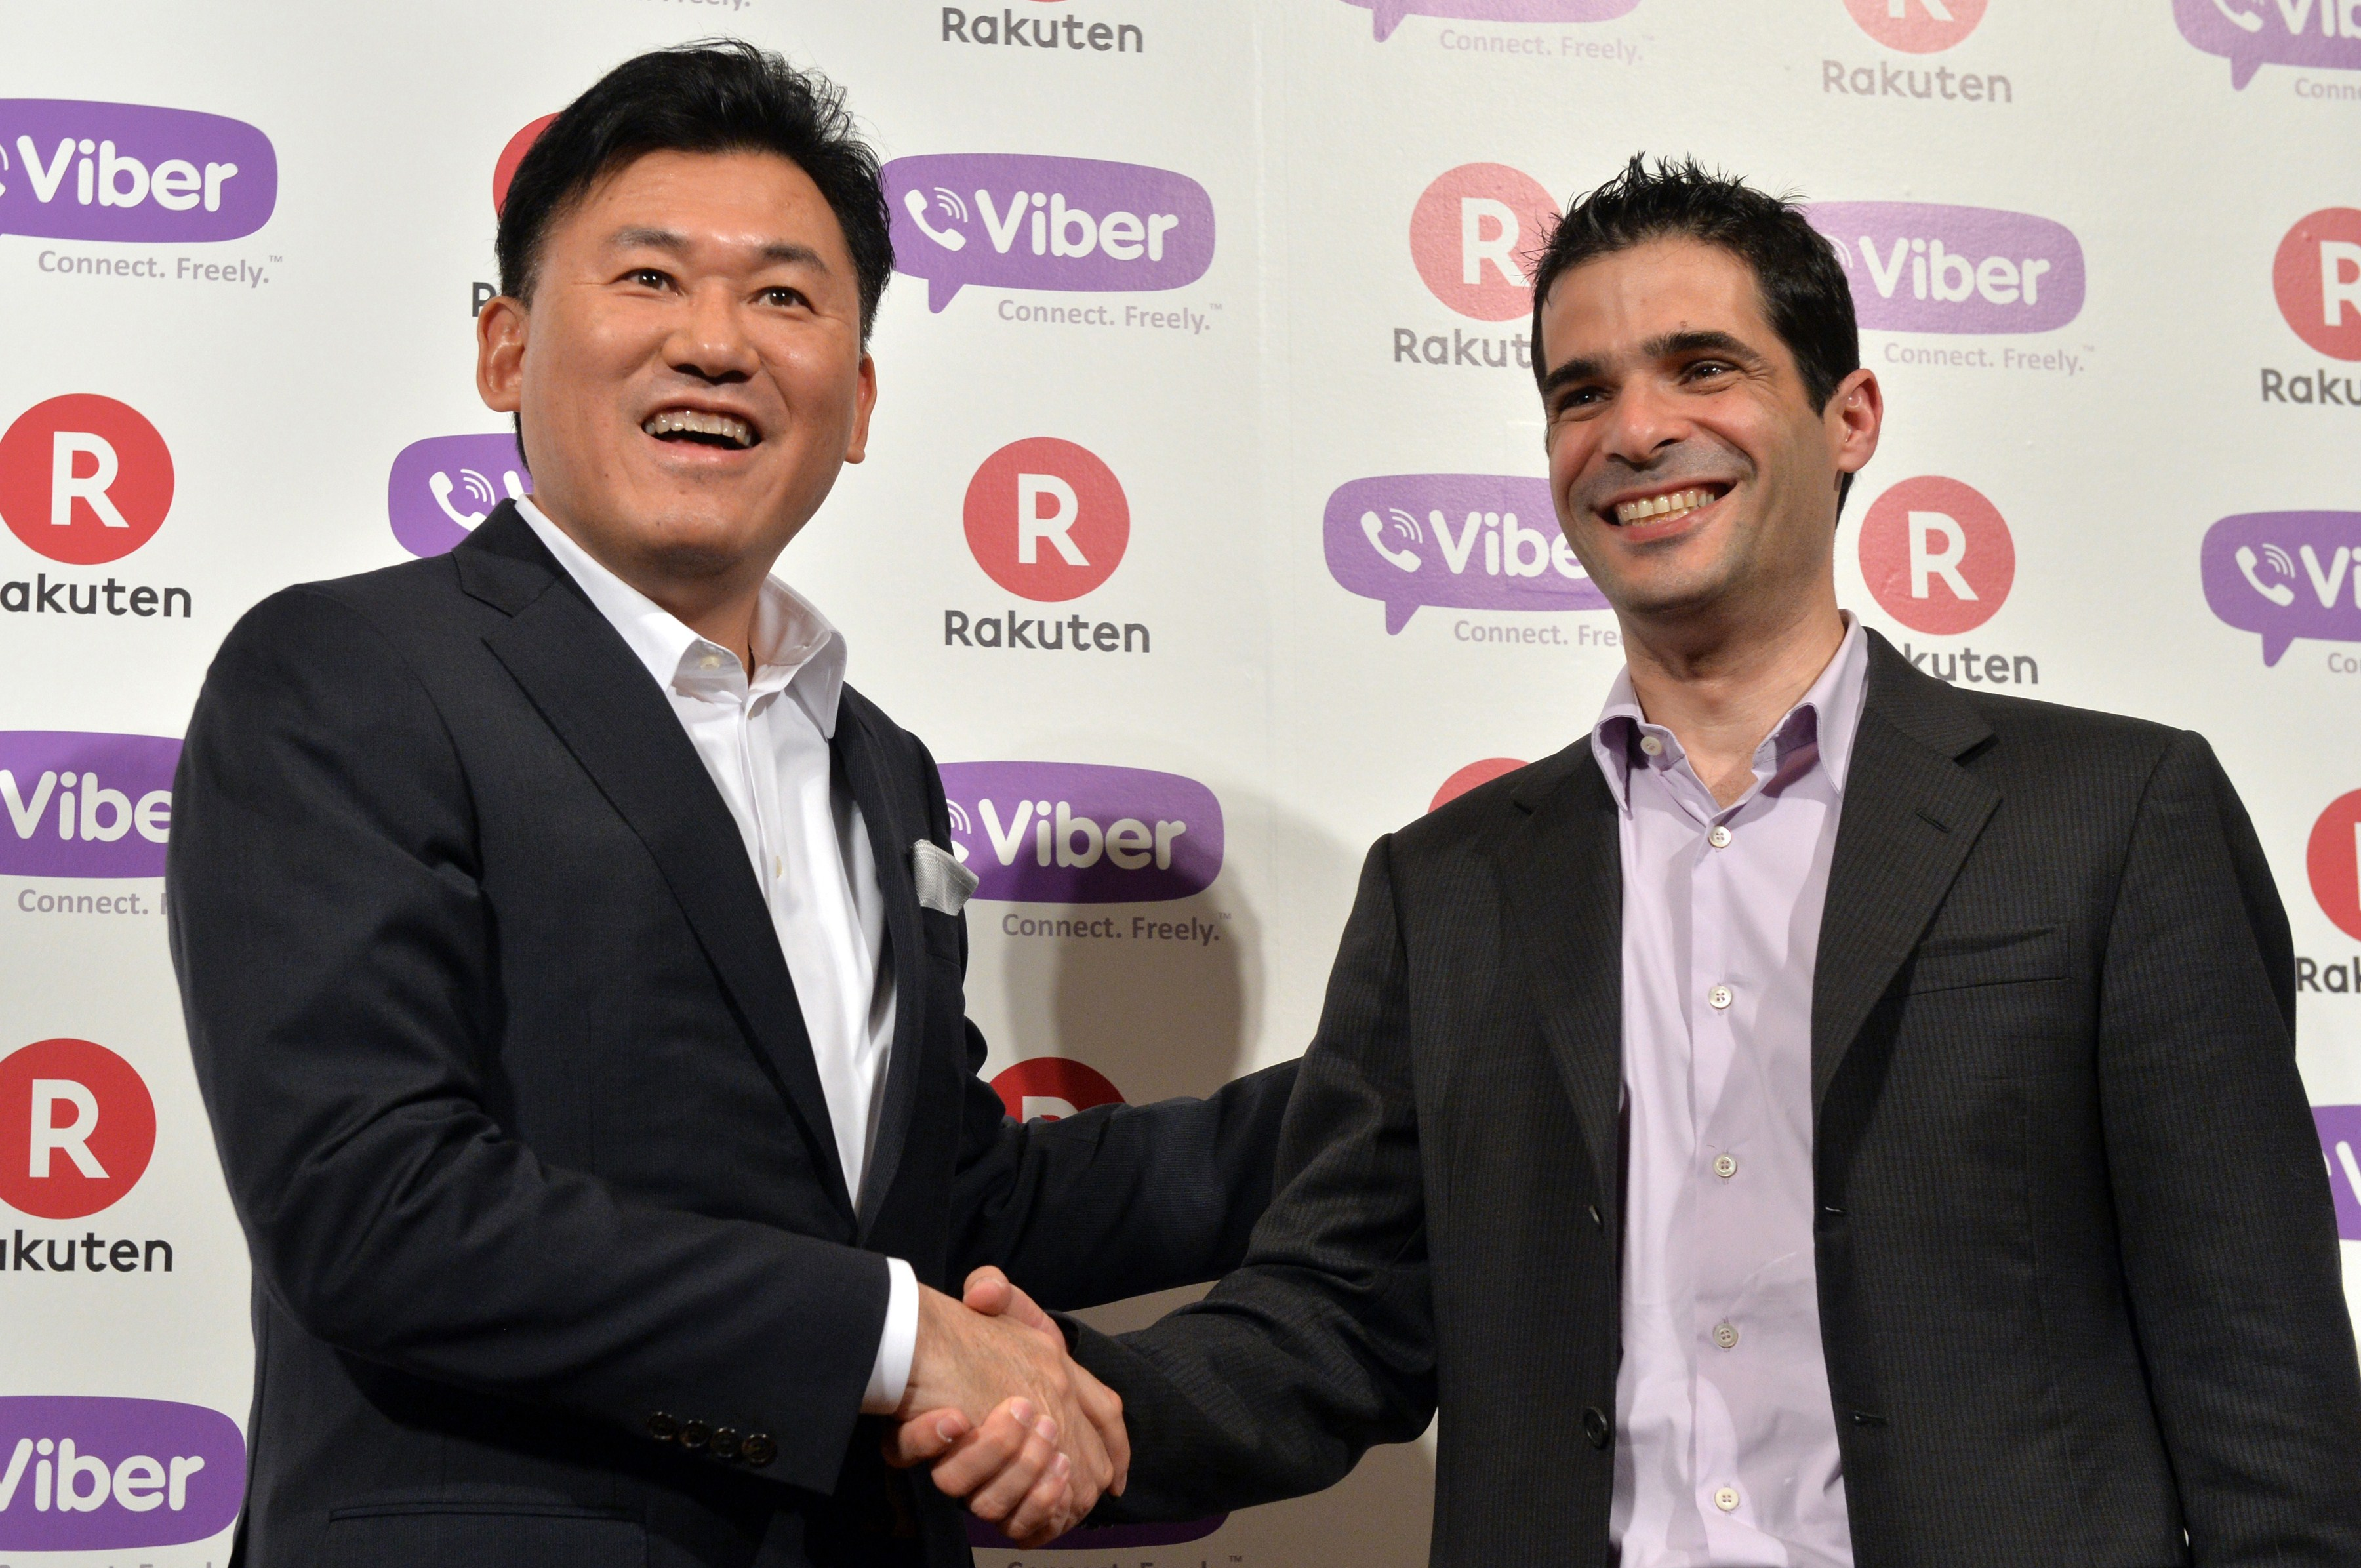 Japan's online shopping giant Rakuten president Hiroshi Mikitani (L) shakes hands with Cyprus-based application maker Viber Media CEO Talmon Marco in Tokyo on February 14, 2014.  Rakuten, Japan's largest online shopping mall operator, said on February 14 it would buy Cyprus-based application maker Viber Media for 900 million USD, as its expands an overseas empire that includes Canadian e-reader company Kobo.   AFP PHOTO / Yoshikazu TSUNO